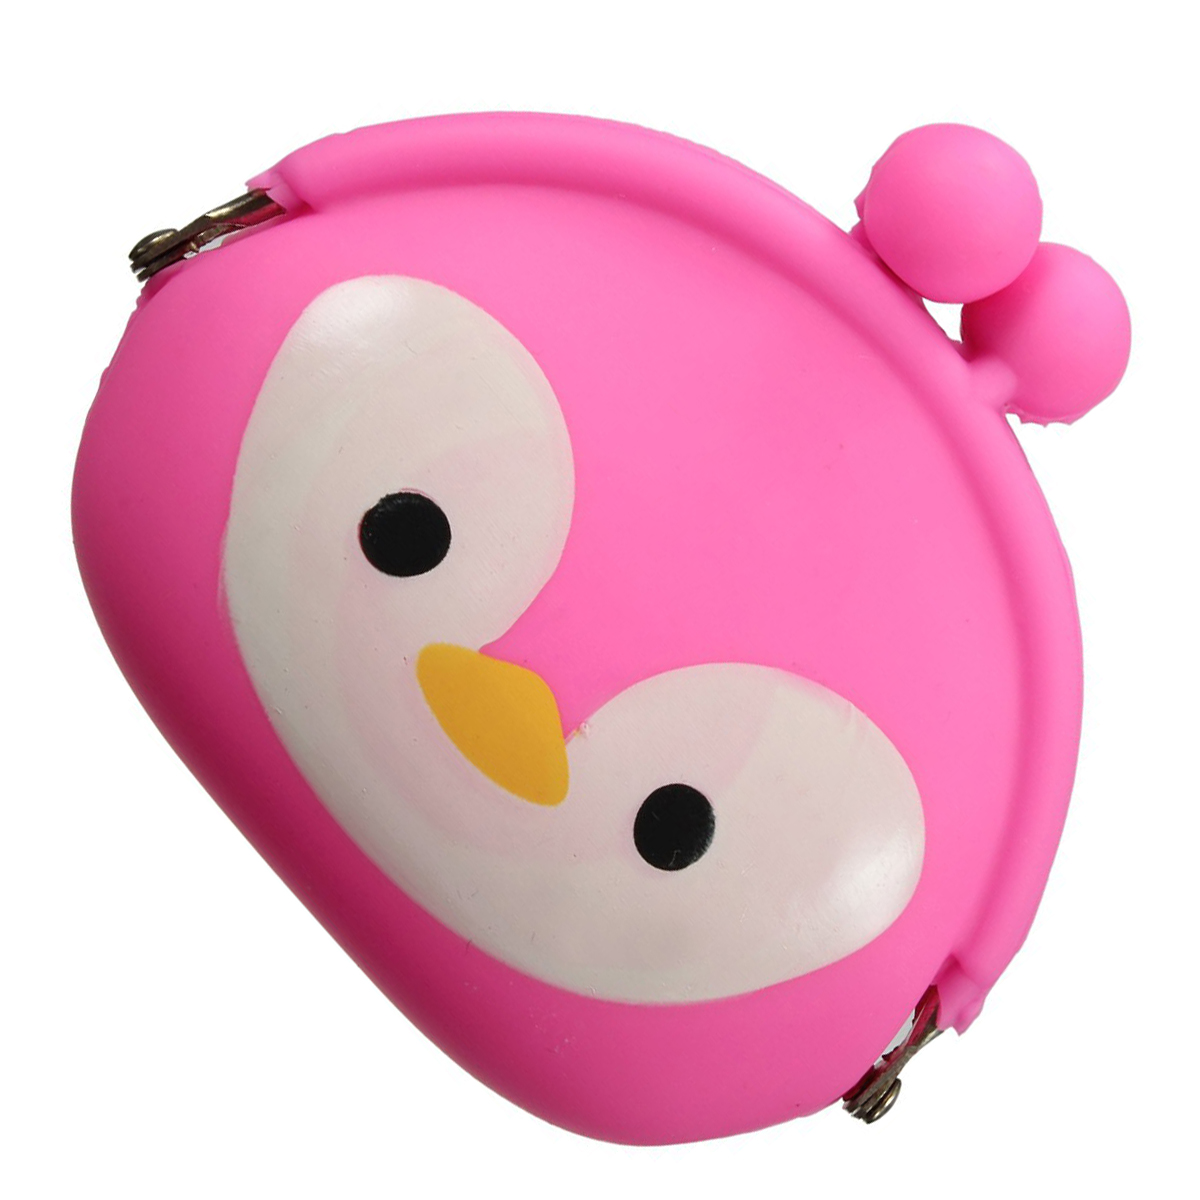 Women Girls Wallet Kawaii Cute Cartoon Animal Silicone Jelly Coin Bag Purse Kids Gift Penguin hazy beauty usb android endoscope 8mm 5m length endoscope 2m hd inspection snake camera waterproof snake pipe borescope cam